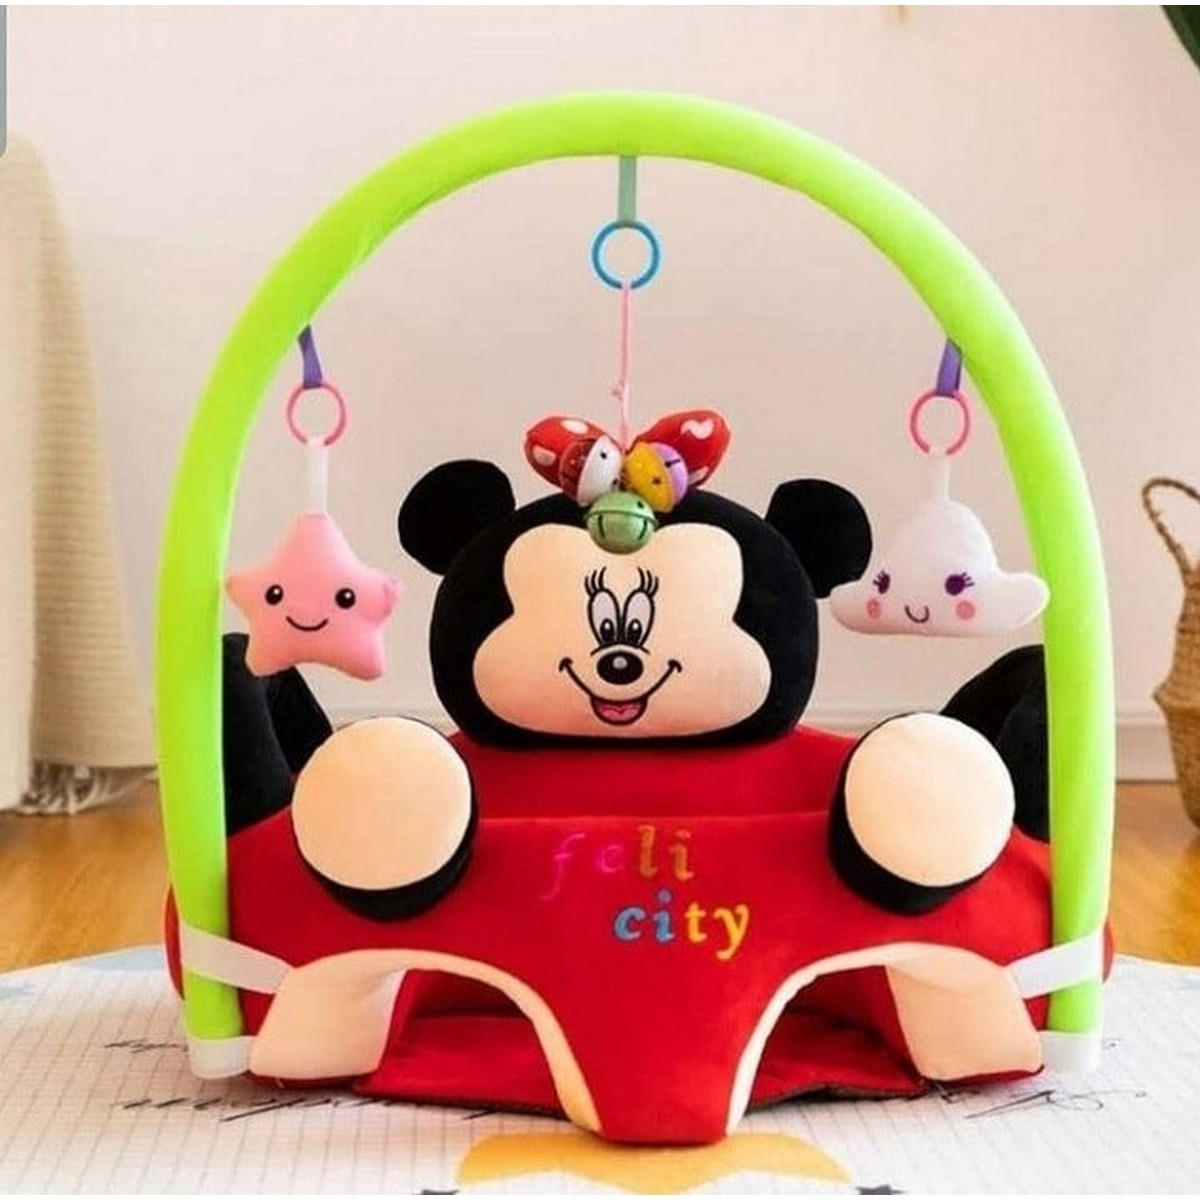 Baby Stuffed Gym Floor Playing Seat Sofa Infant Support Seat with Handle Toys Easy Carry Learning Sitting for Pillow Chair Cushion Bouncer Floor Seat Feeding Plush Floor Cute Animal Seats Soft Cotton Nest Puff Safety Chair Soft Babies Toys with 2 Holes